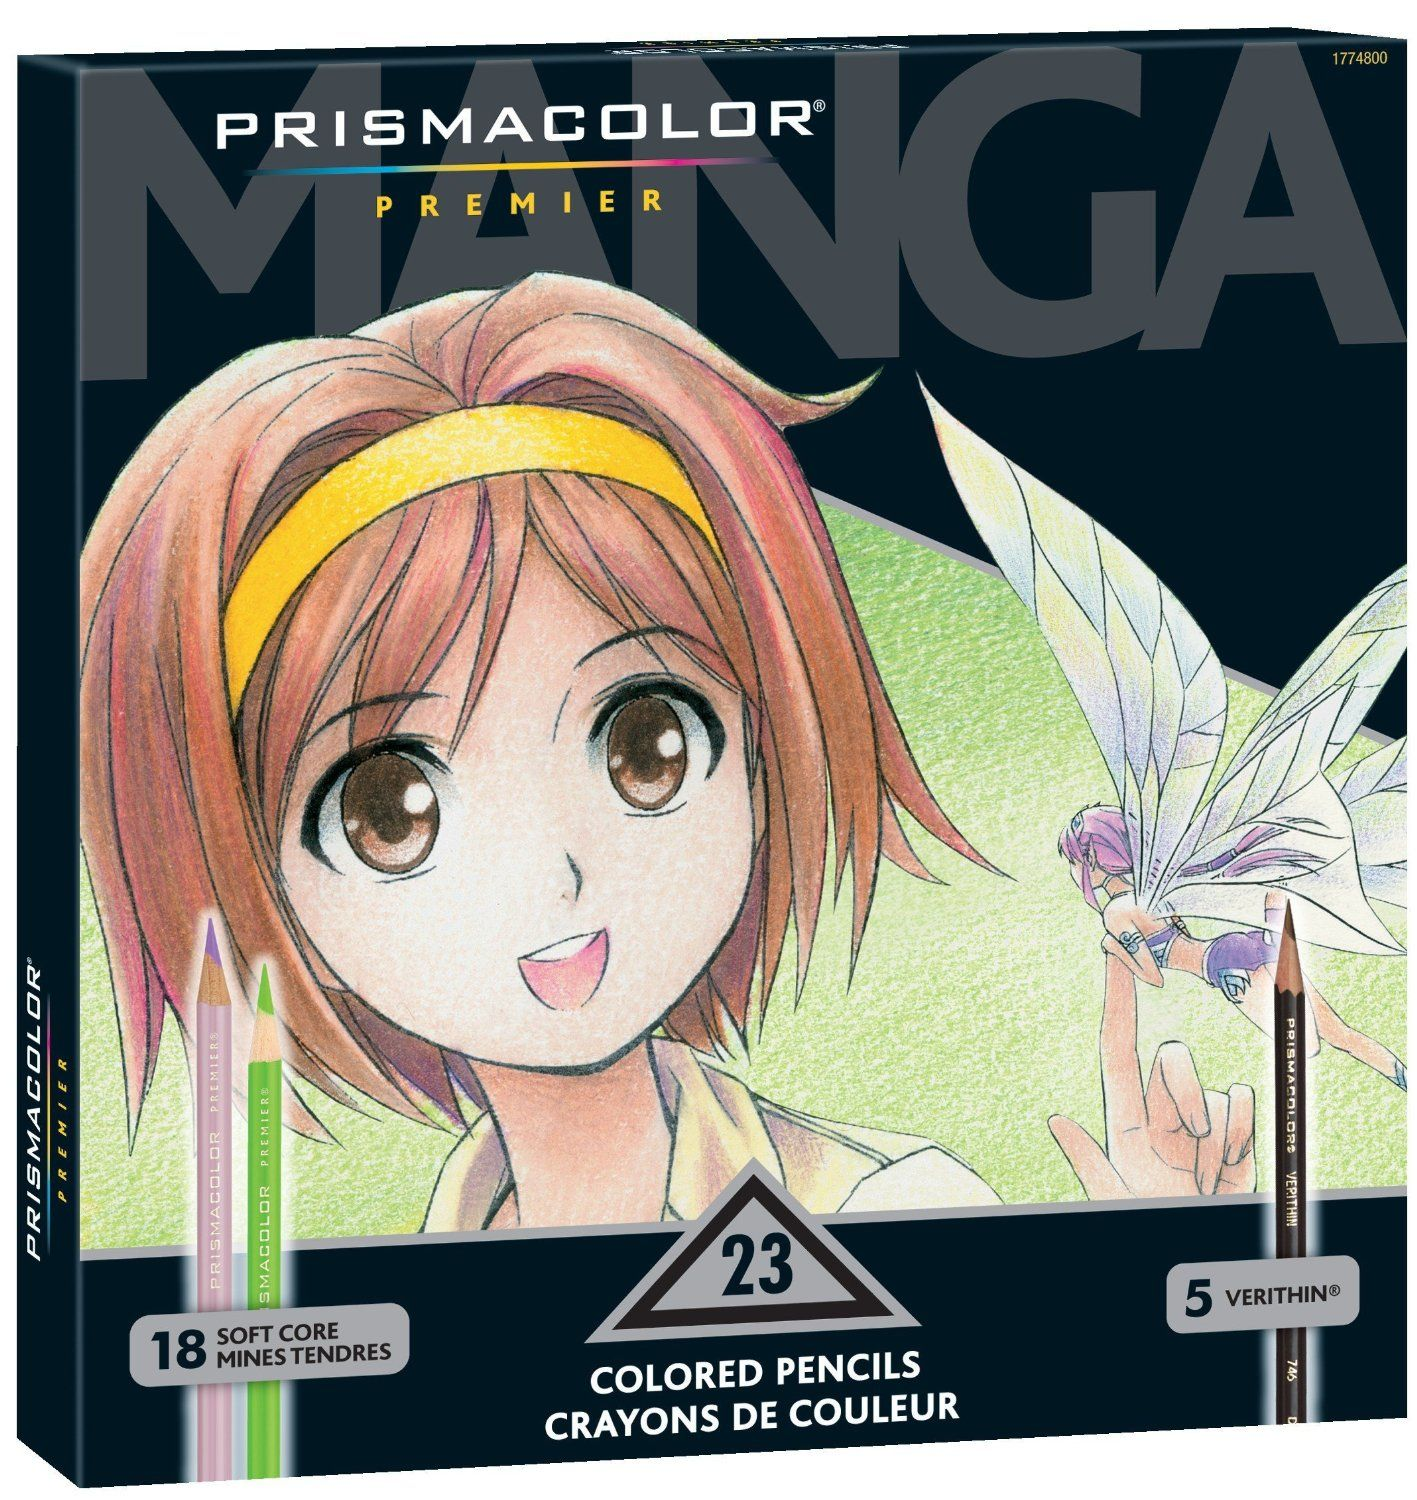 Color art colored pencils - Prismacolor Premier Colored Pencils Manga Colors 23 Pack Wood Colored Pencils Arts